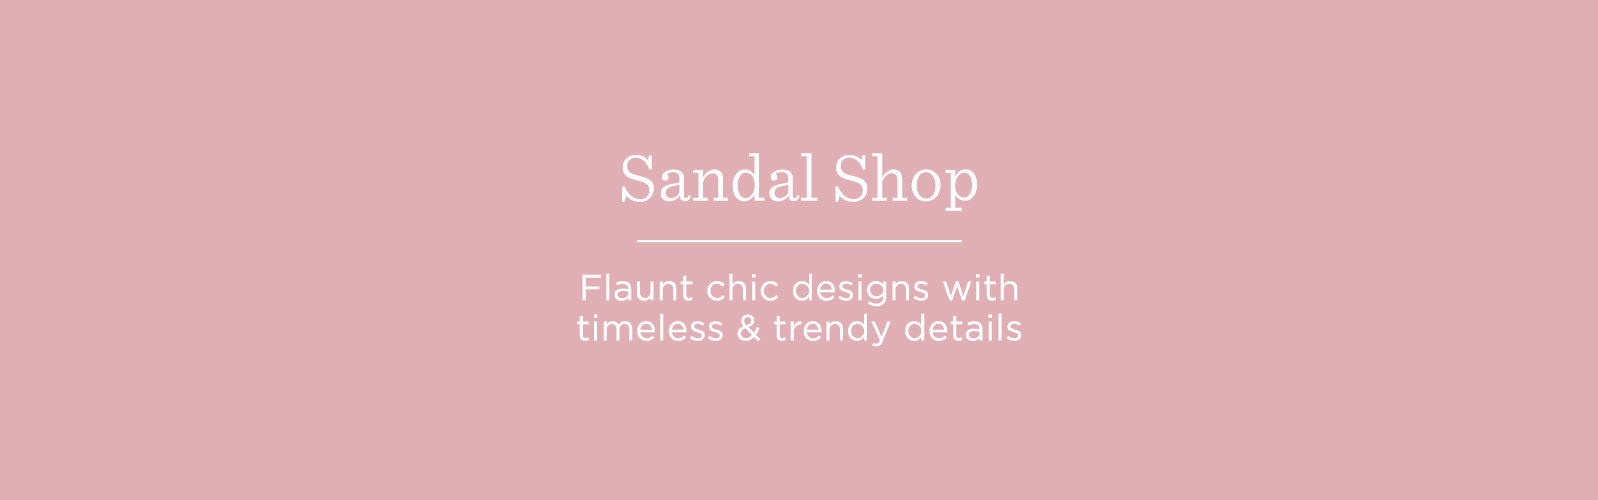 Sandal Shop. Flaunt chic designs with timeless & trendy details